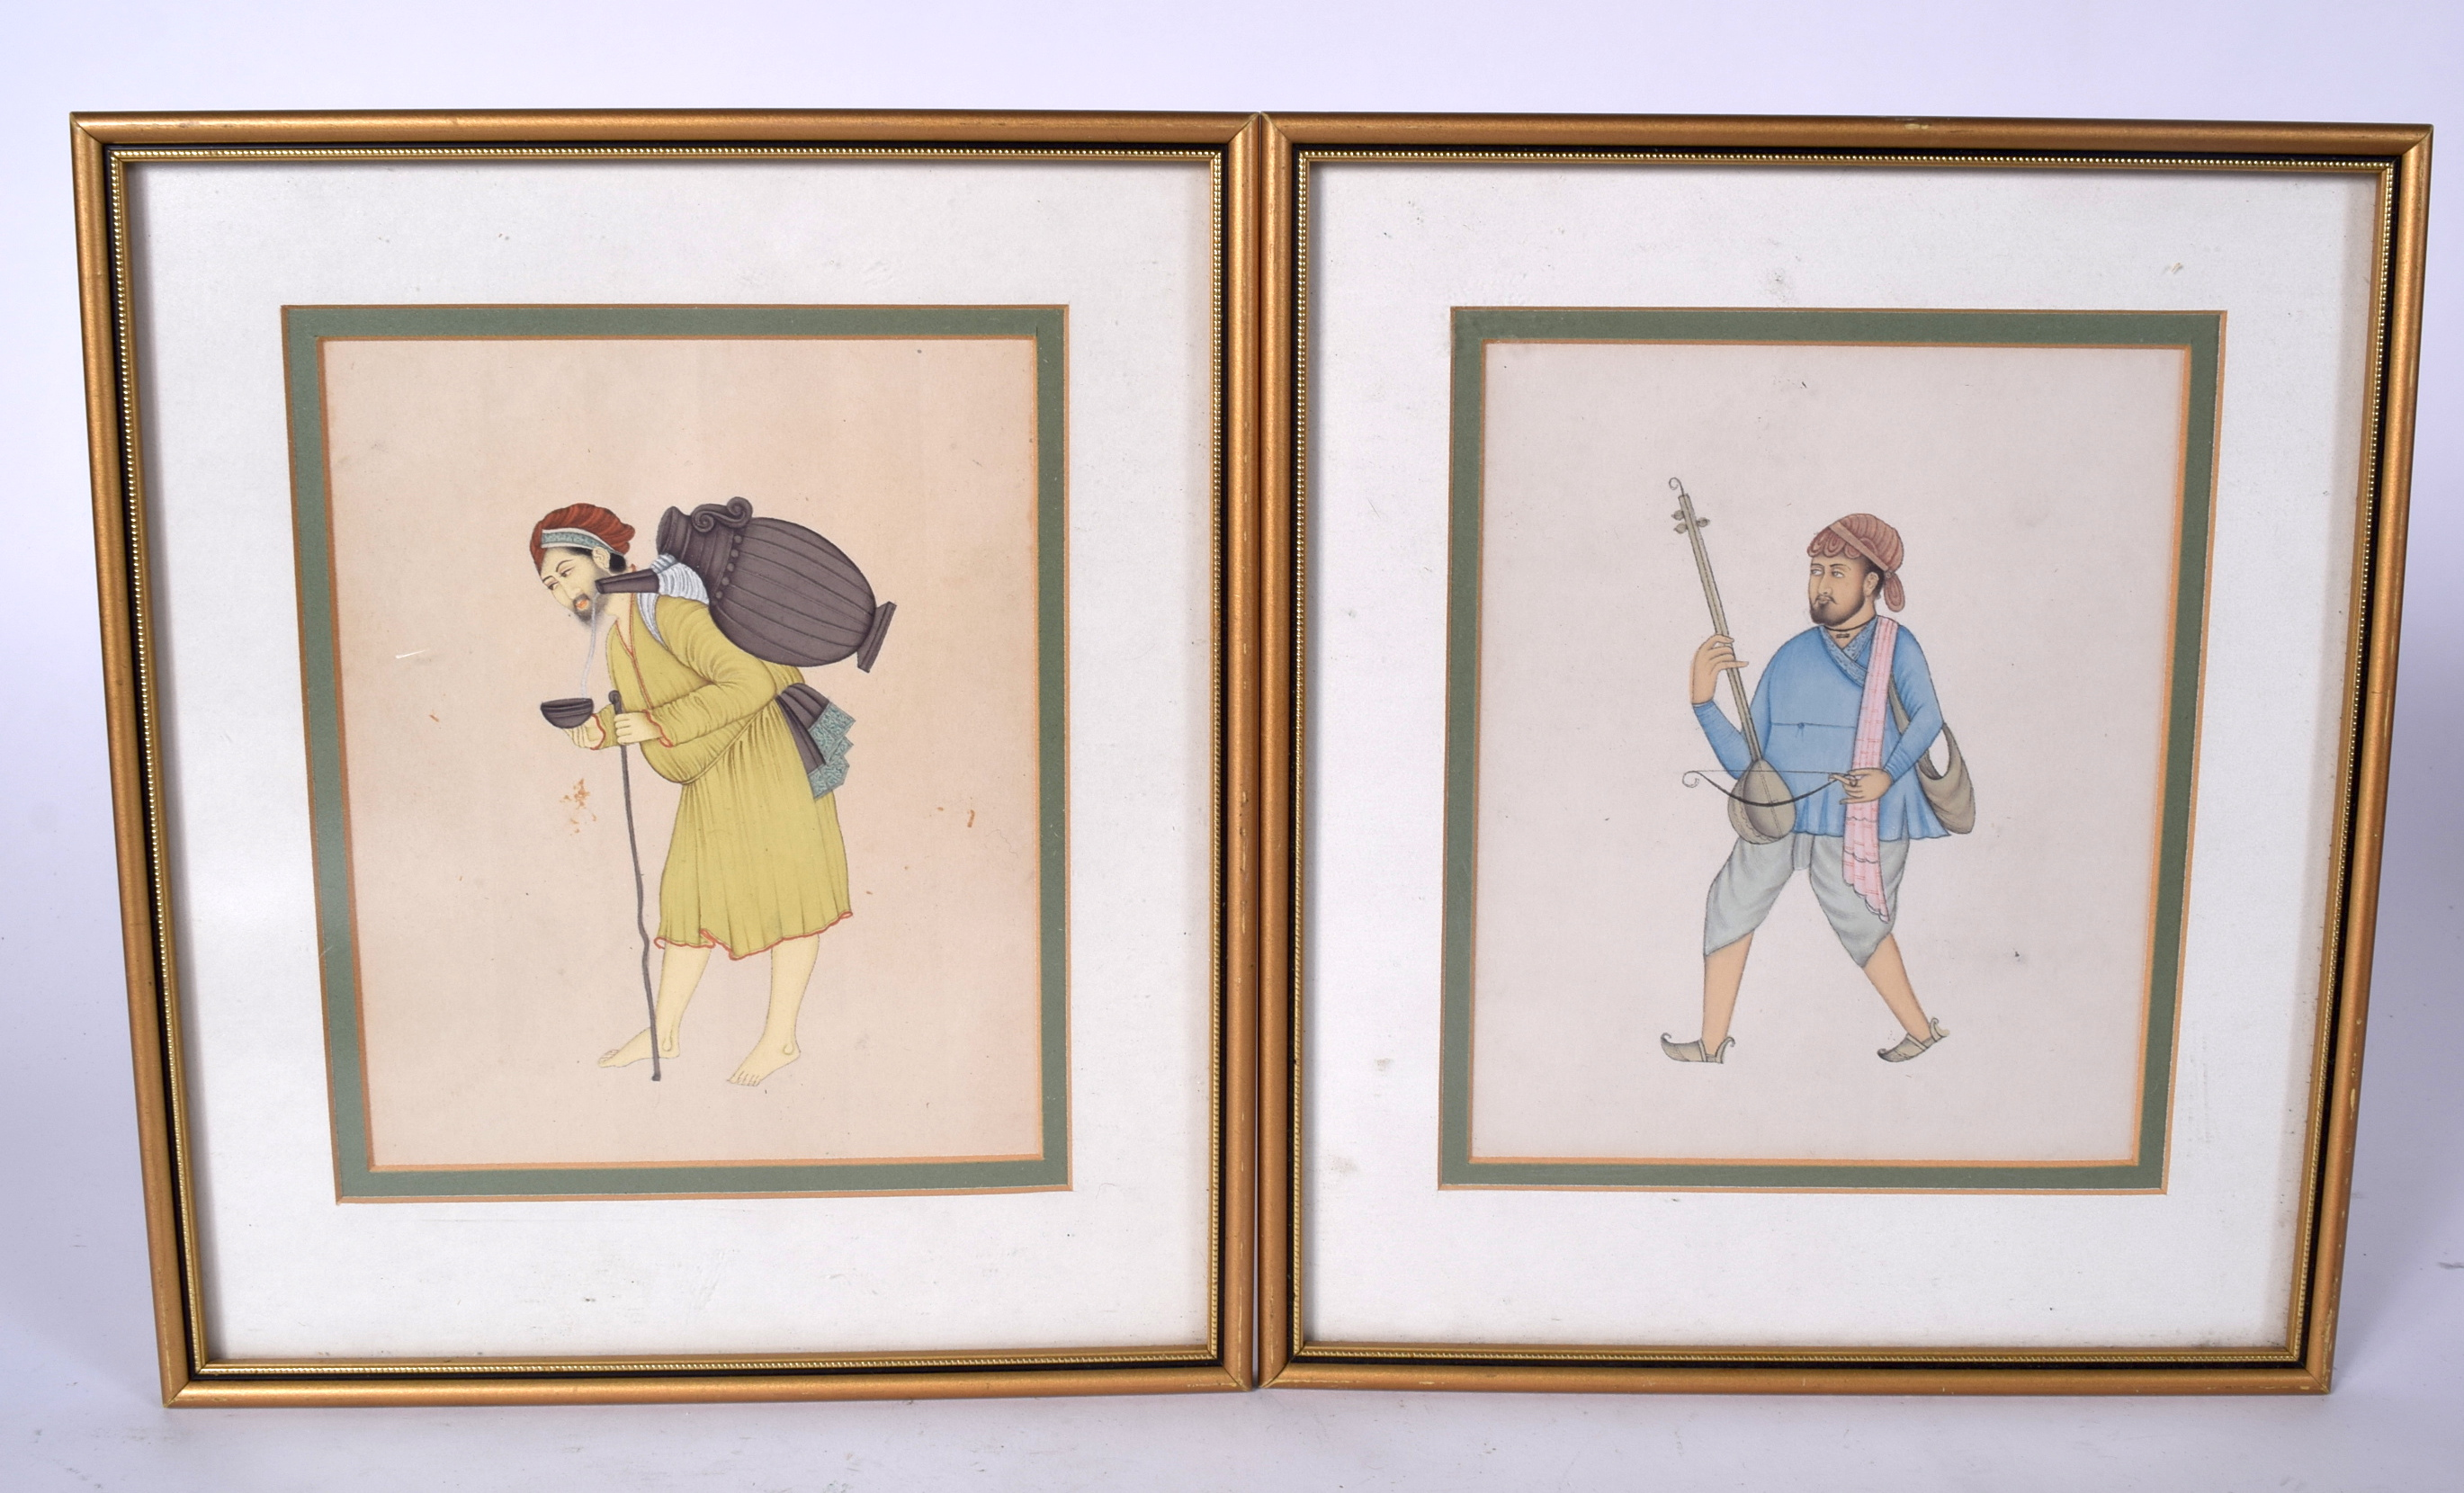 Lot 2643 - INDIAN SCHOOL (early 20th century) FRAMED PAIR WATERCOLOURS, a tradesman, together with another sim